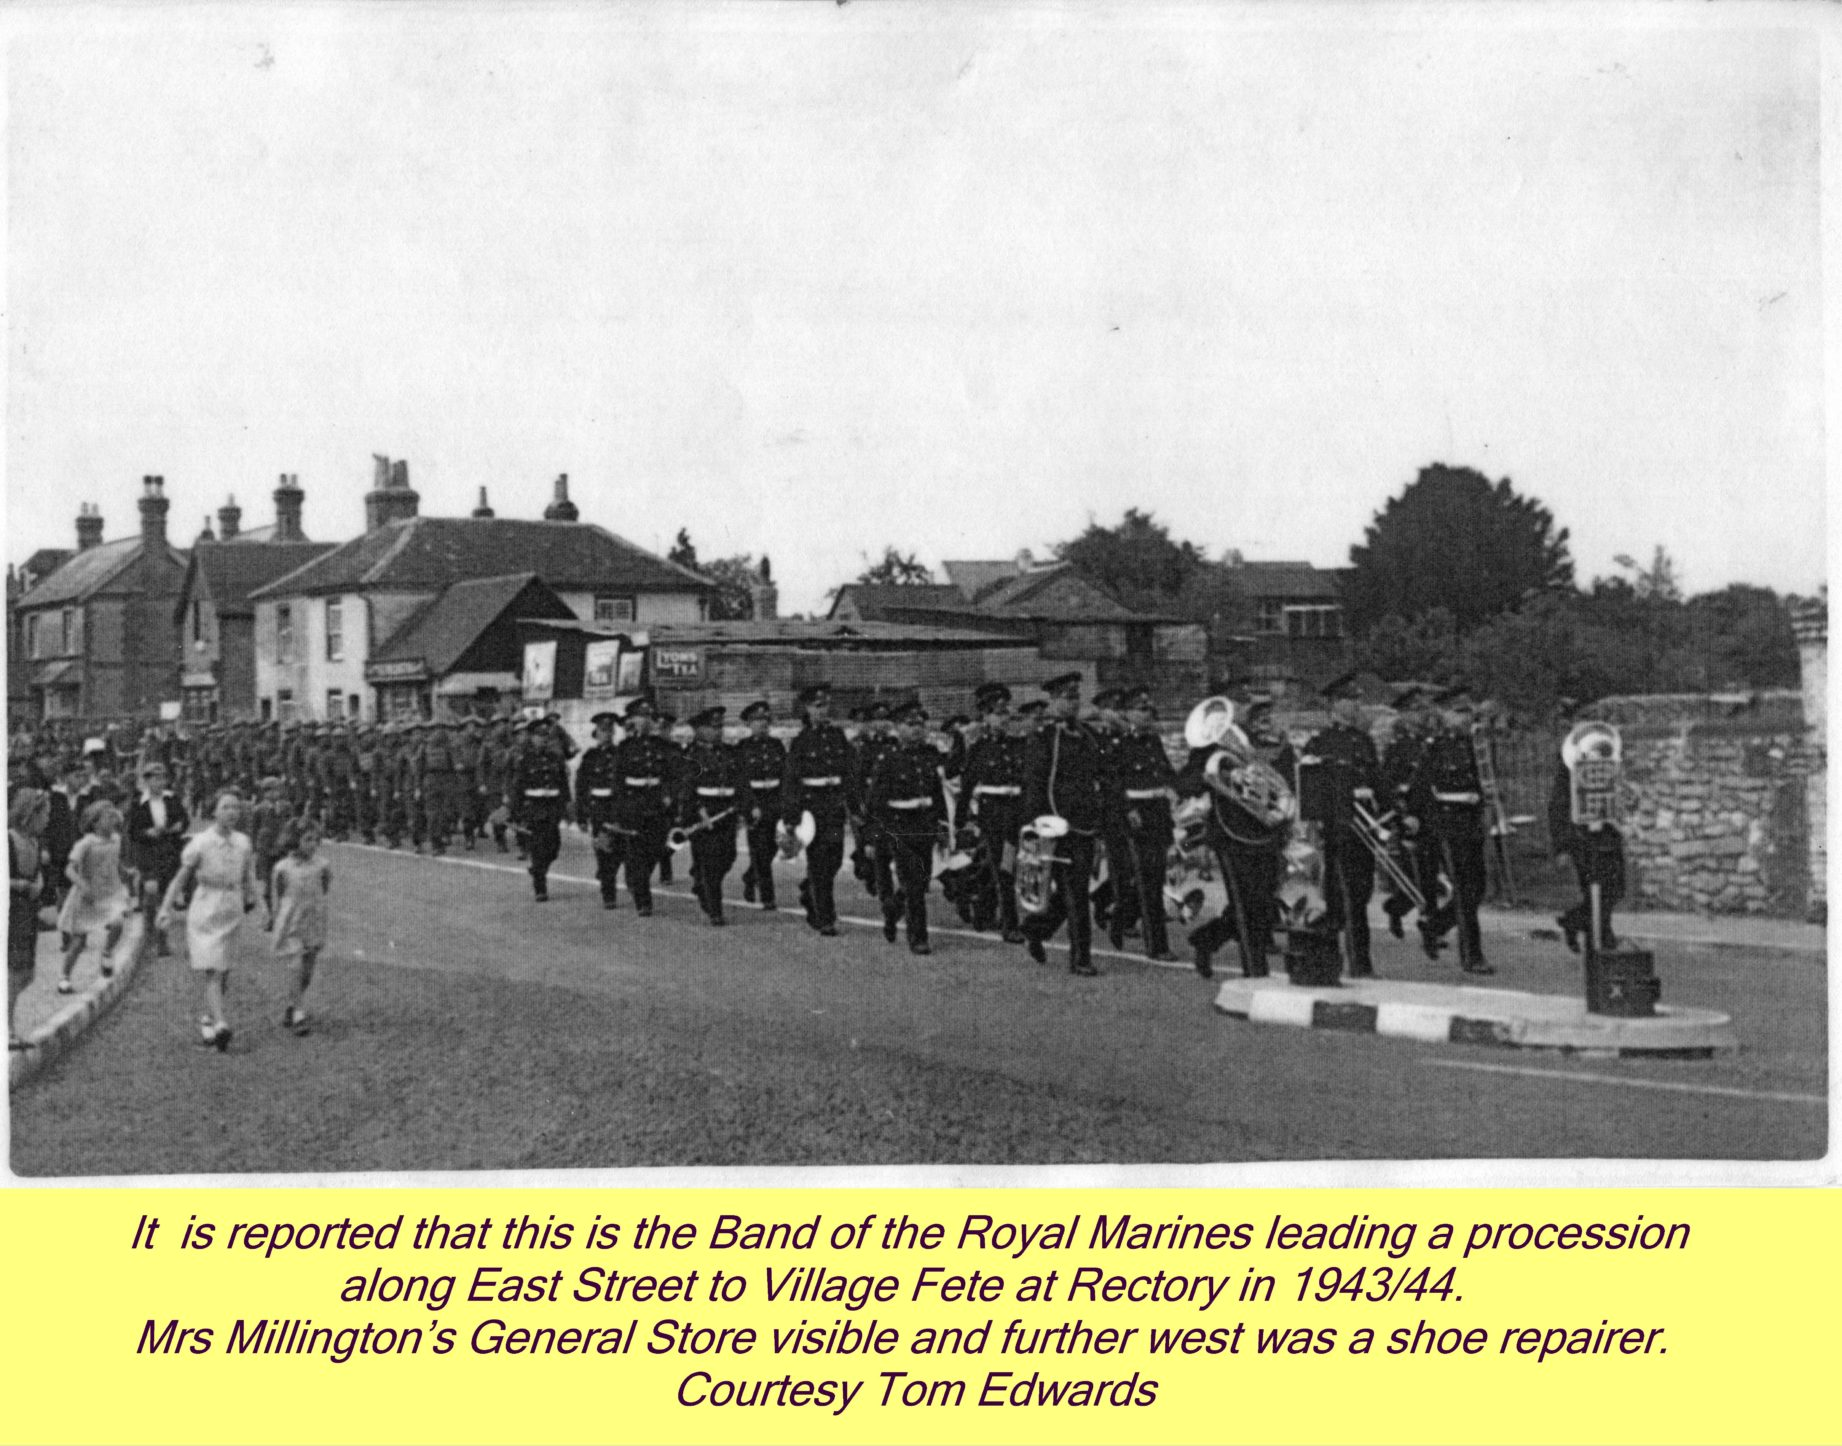 Tom says - Royal Marine Band leading parade to Village Fete - heading east on East Street to Rectory - 1943-44